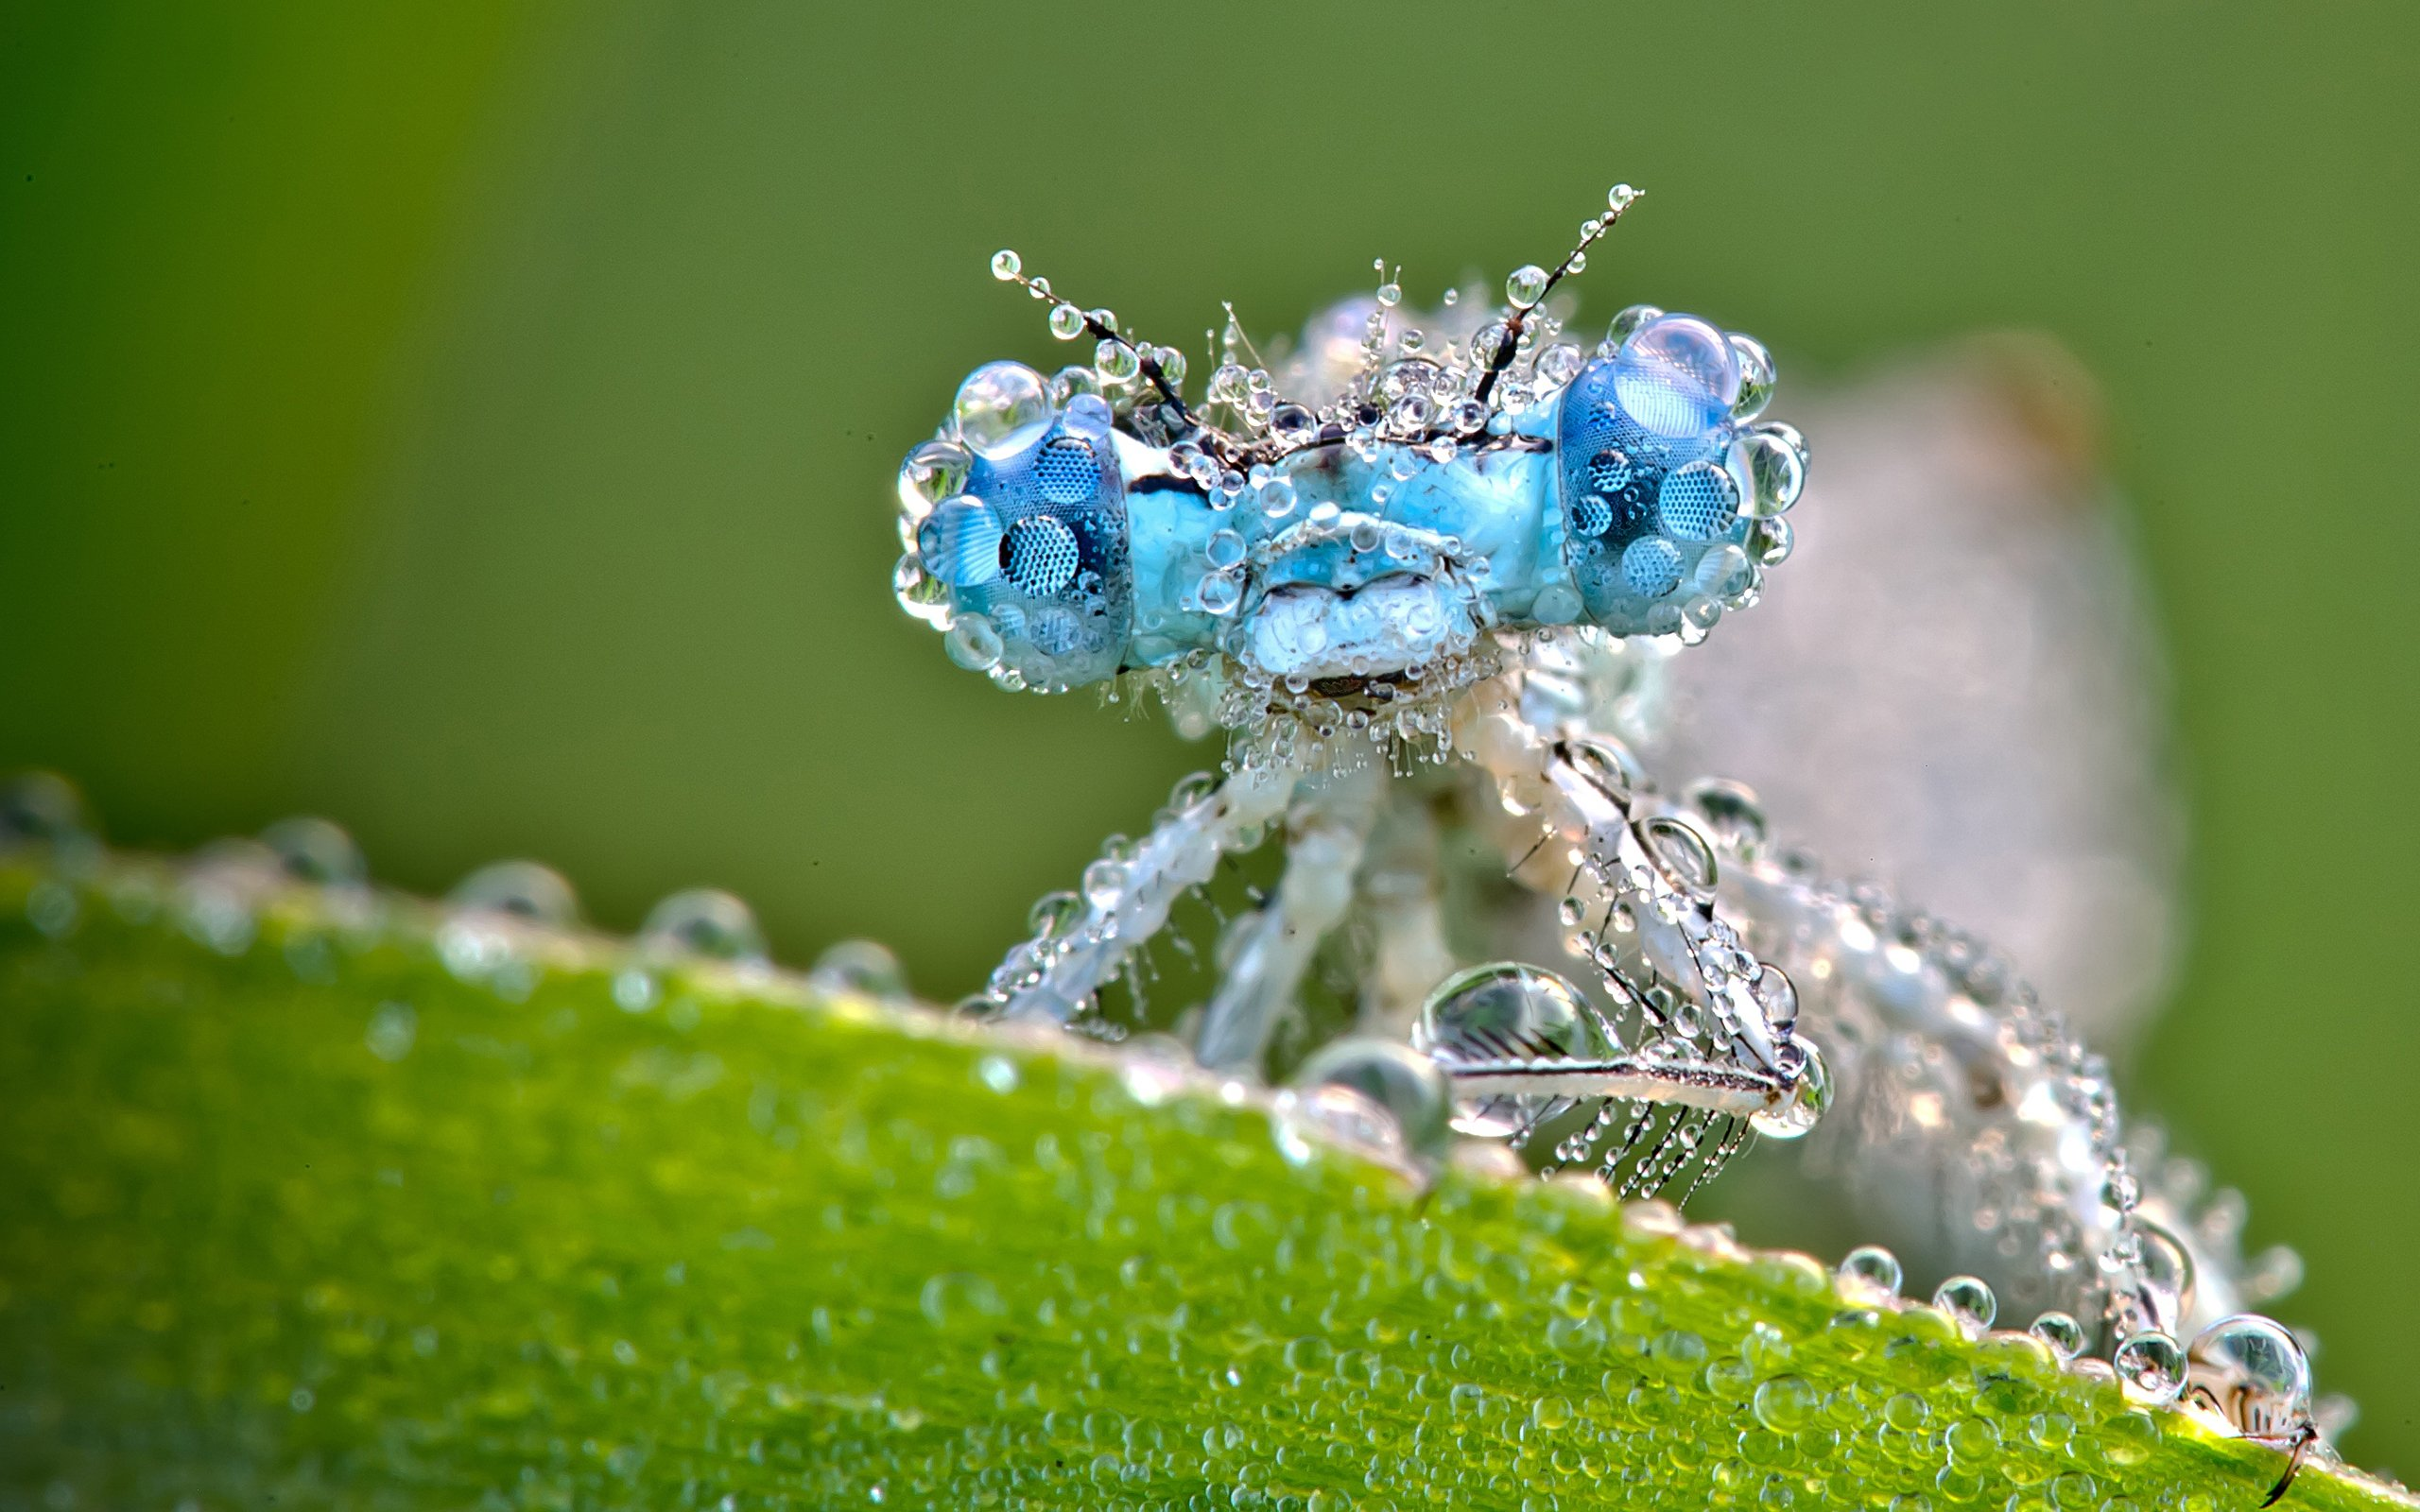 Dragonfly And Dew Drops